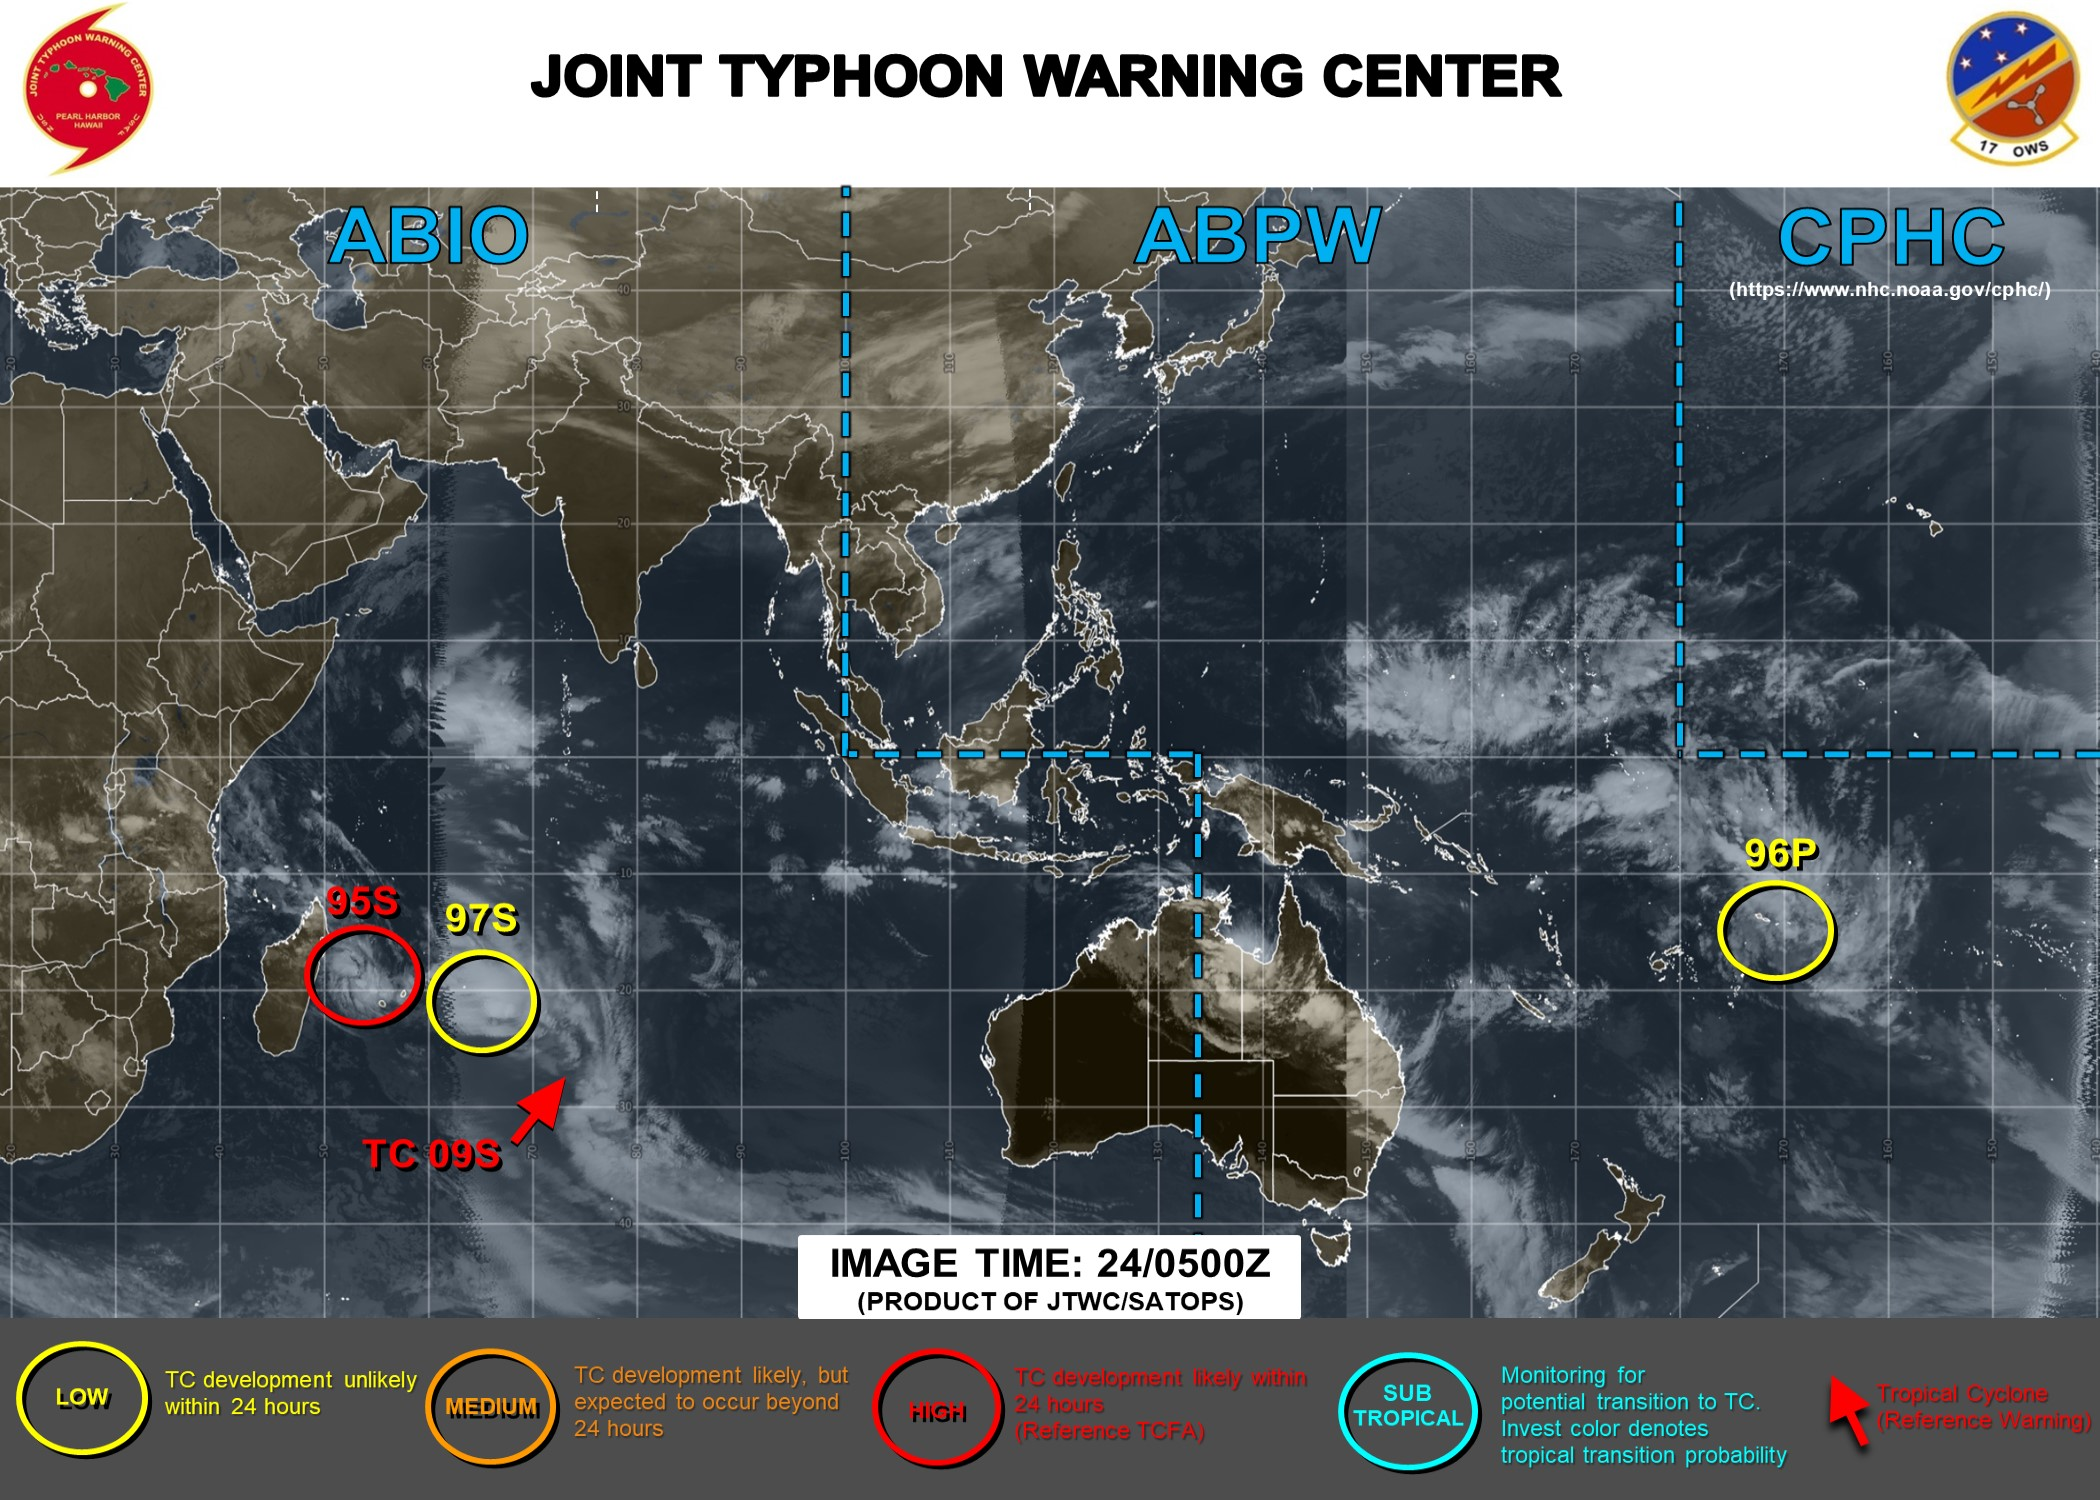 South Indian: 95S : Update at 24/06UTC